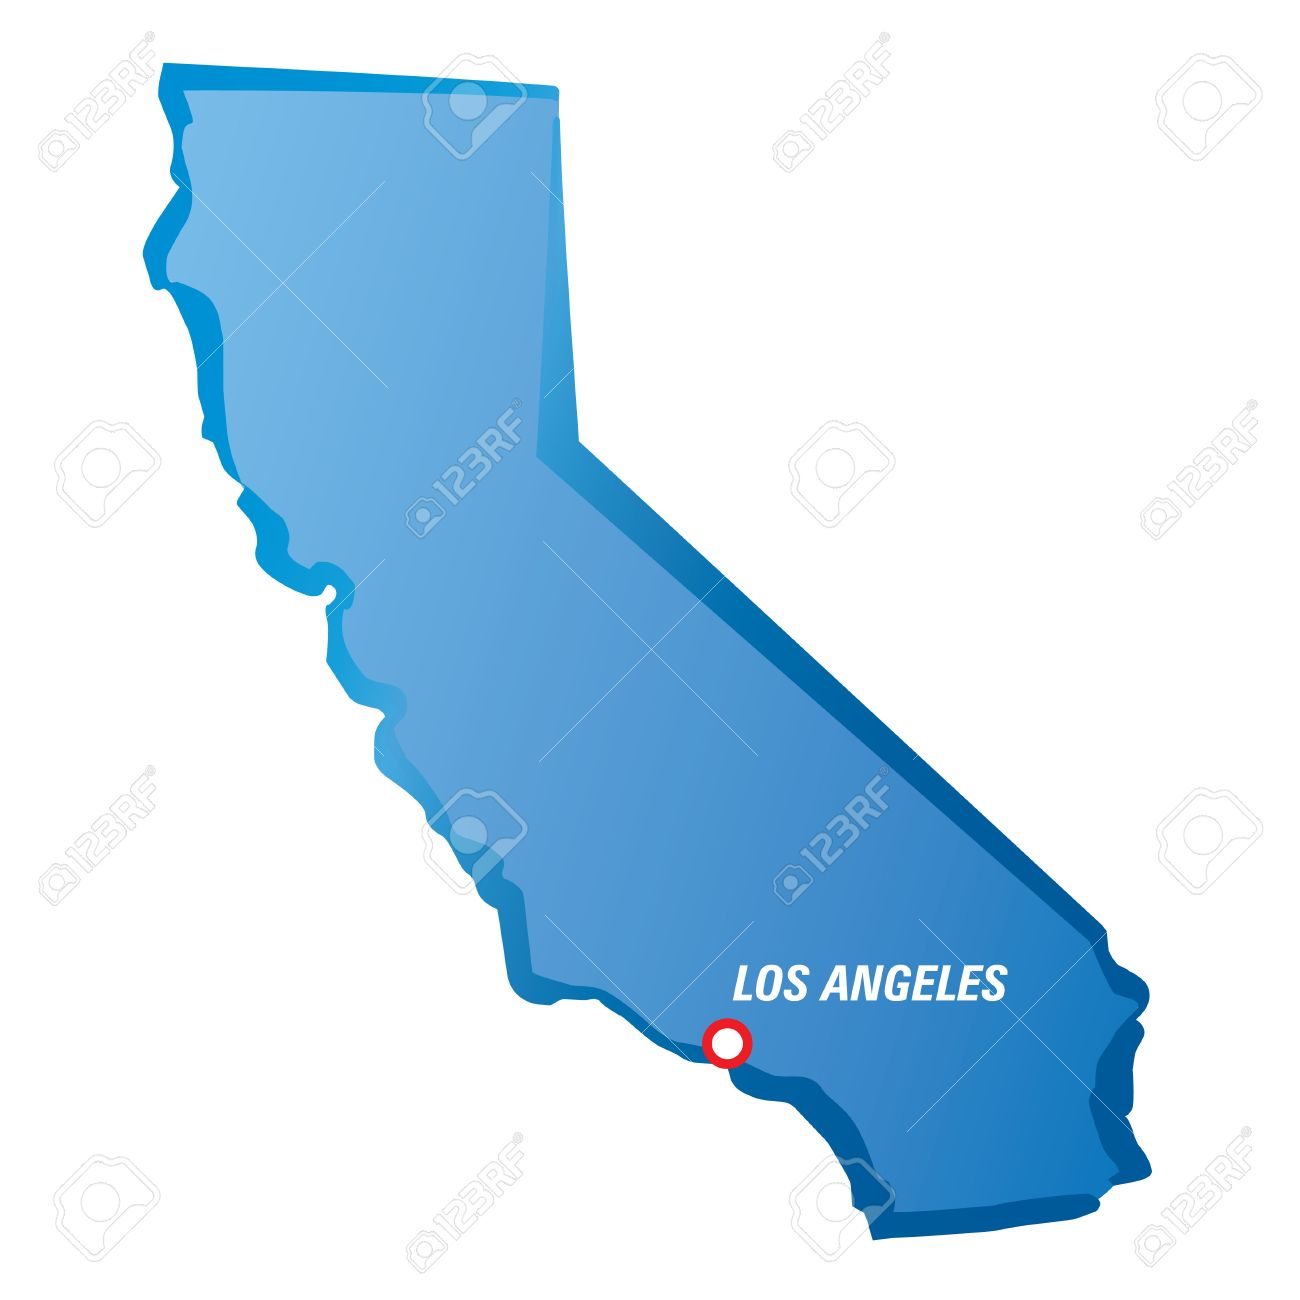 Map Of California And Los Angeles Vector Illustration Royalty Free